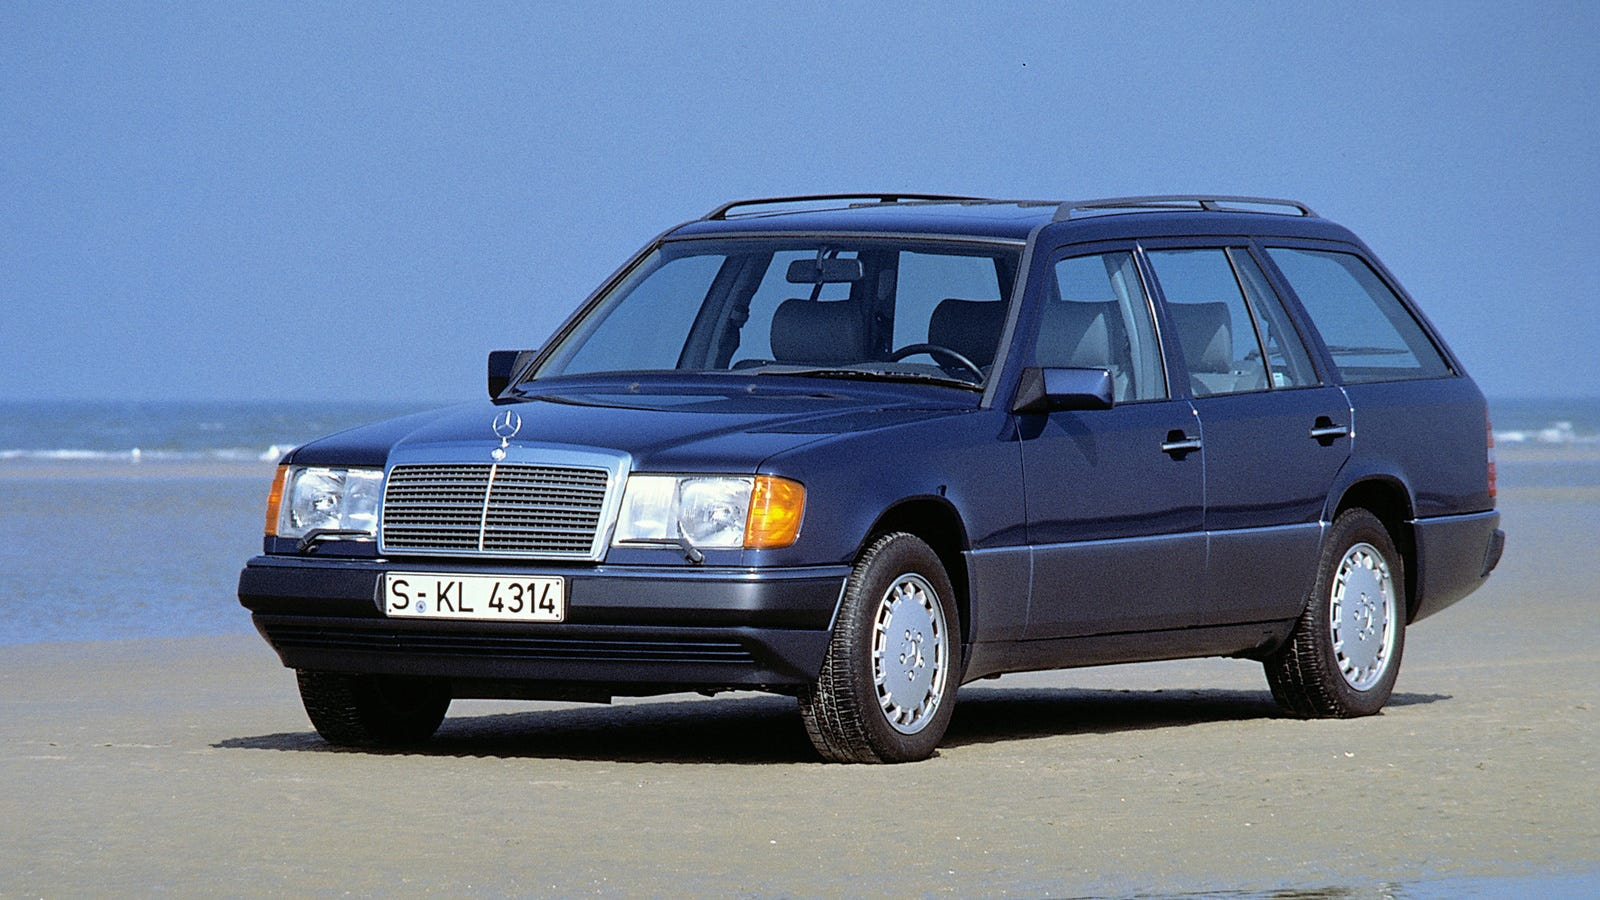 Jeopardy! Finalist Austin Rogers Hatches Elaborate Plan To Travel The World In A 1991 Mercedes-Benz Wagon